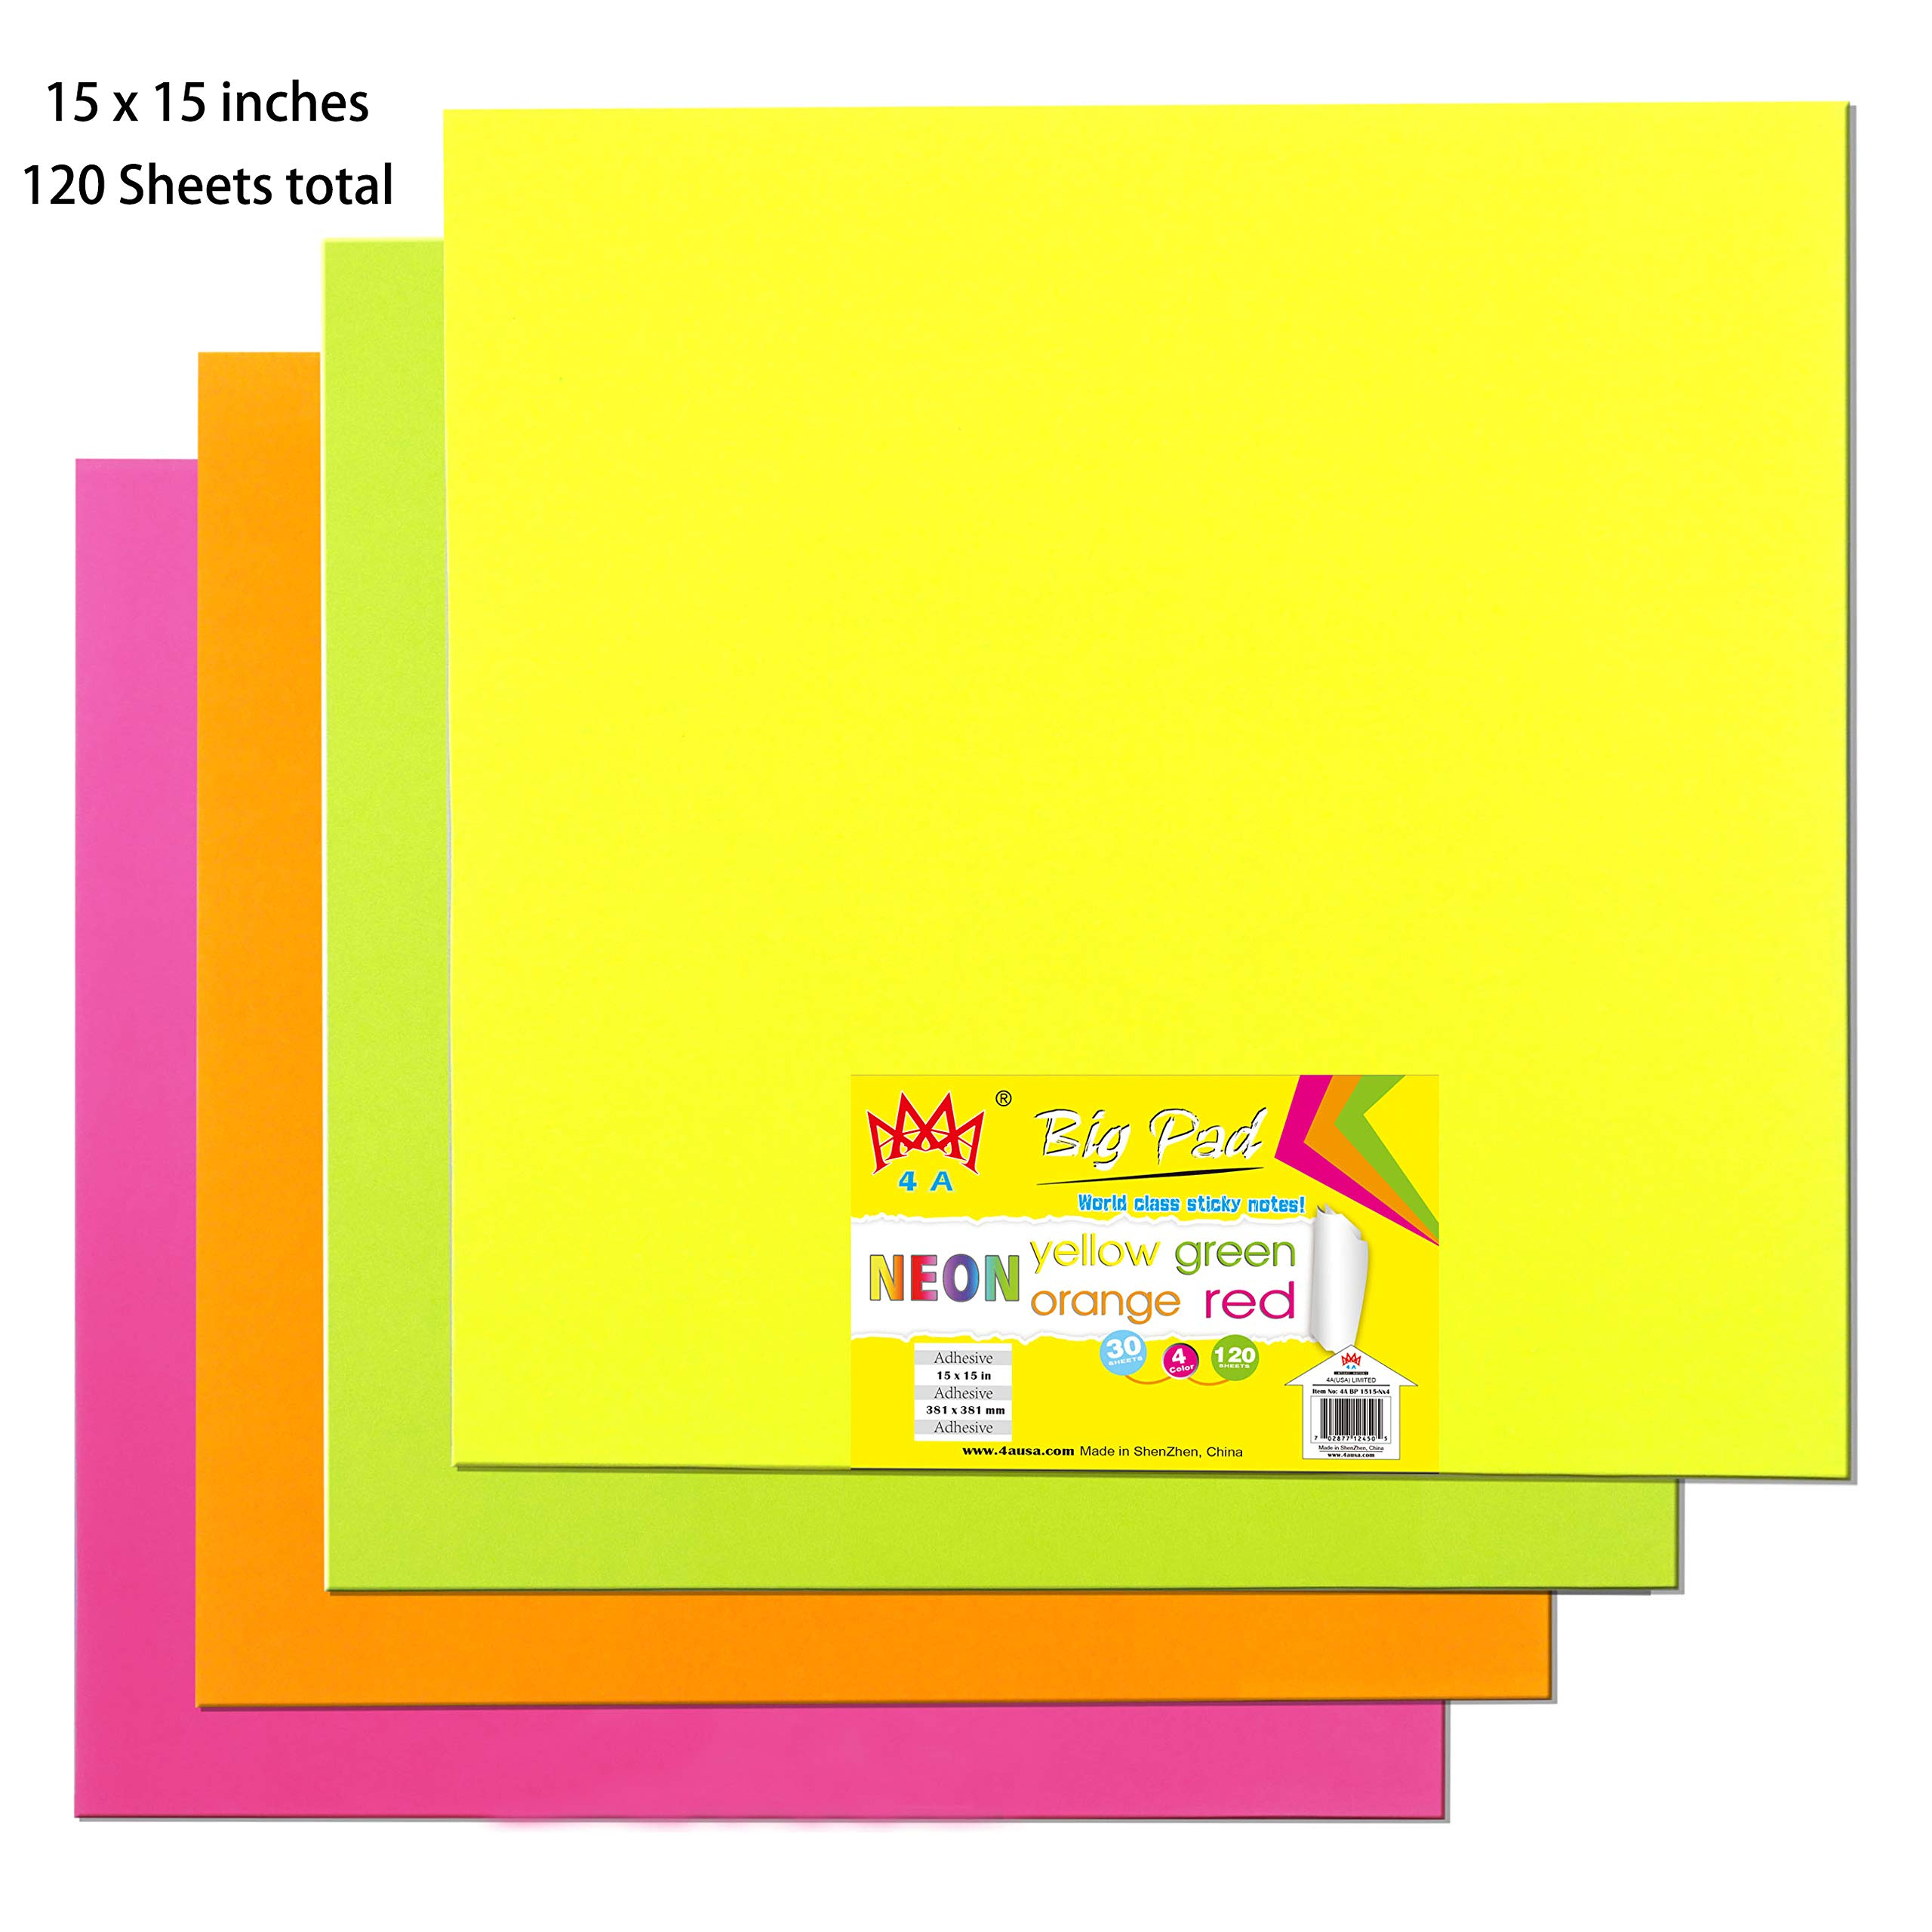 4A Sticky Big Pad,15 x 15 in,Large Size,Neon Yellow,Orange,Red and Green,Self-Stick Notes,30 Sheets/Pad,4 Pads/Pack,4A BP 1515-Nx4 by AAAA 4A